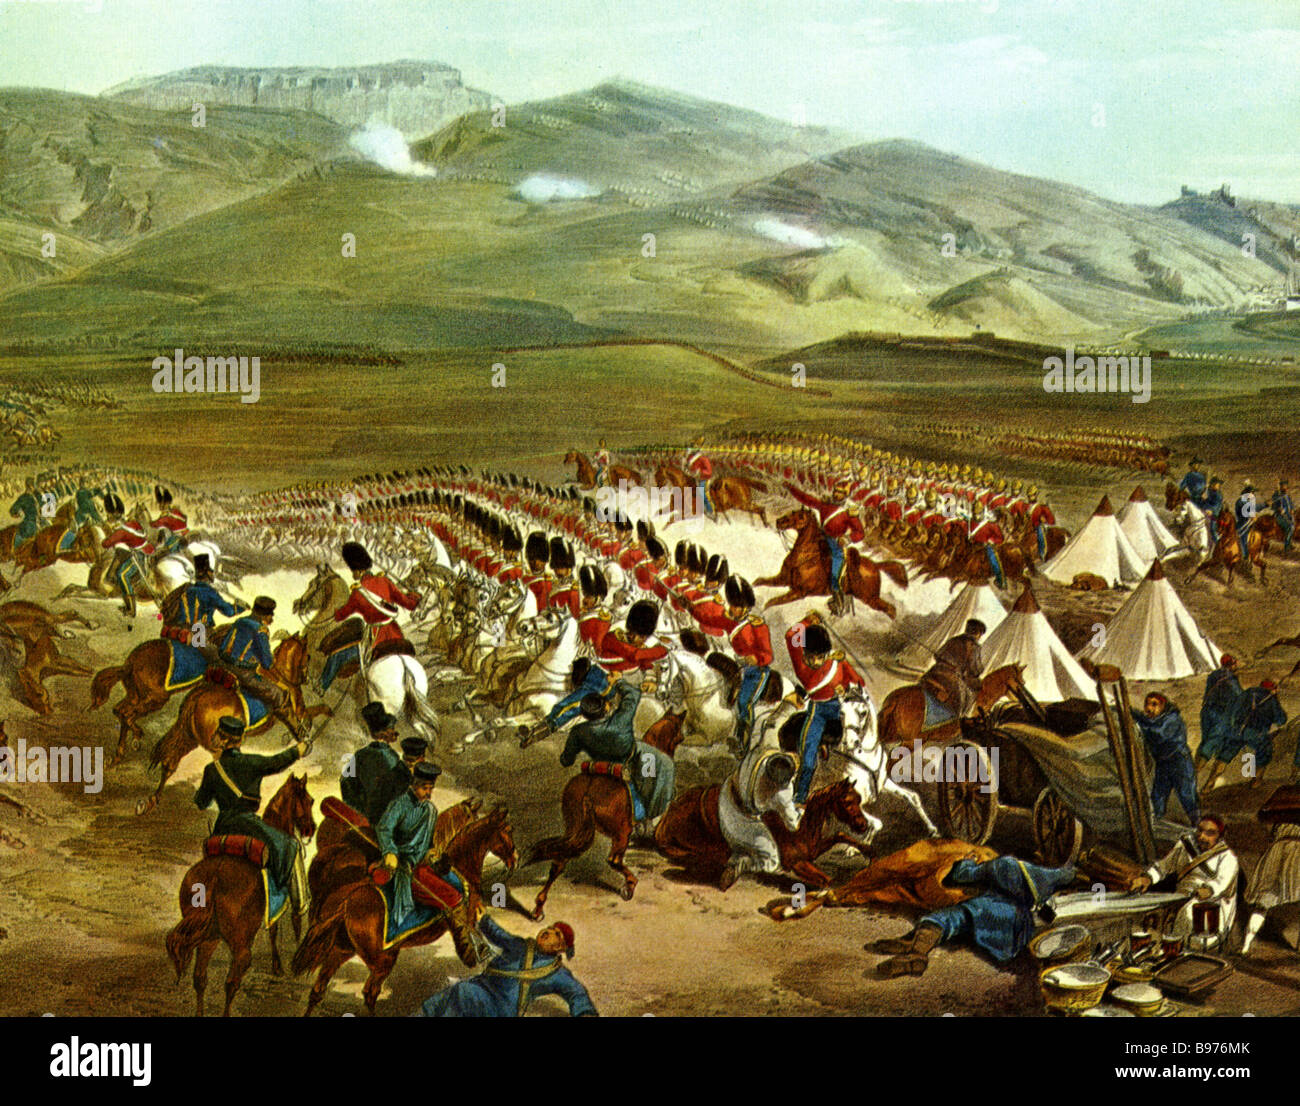 THE CHARGE OF THE LIGHT BRIGADE in the Crimea in 1854 shown in a contemporary engraving - Stock Image